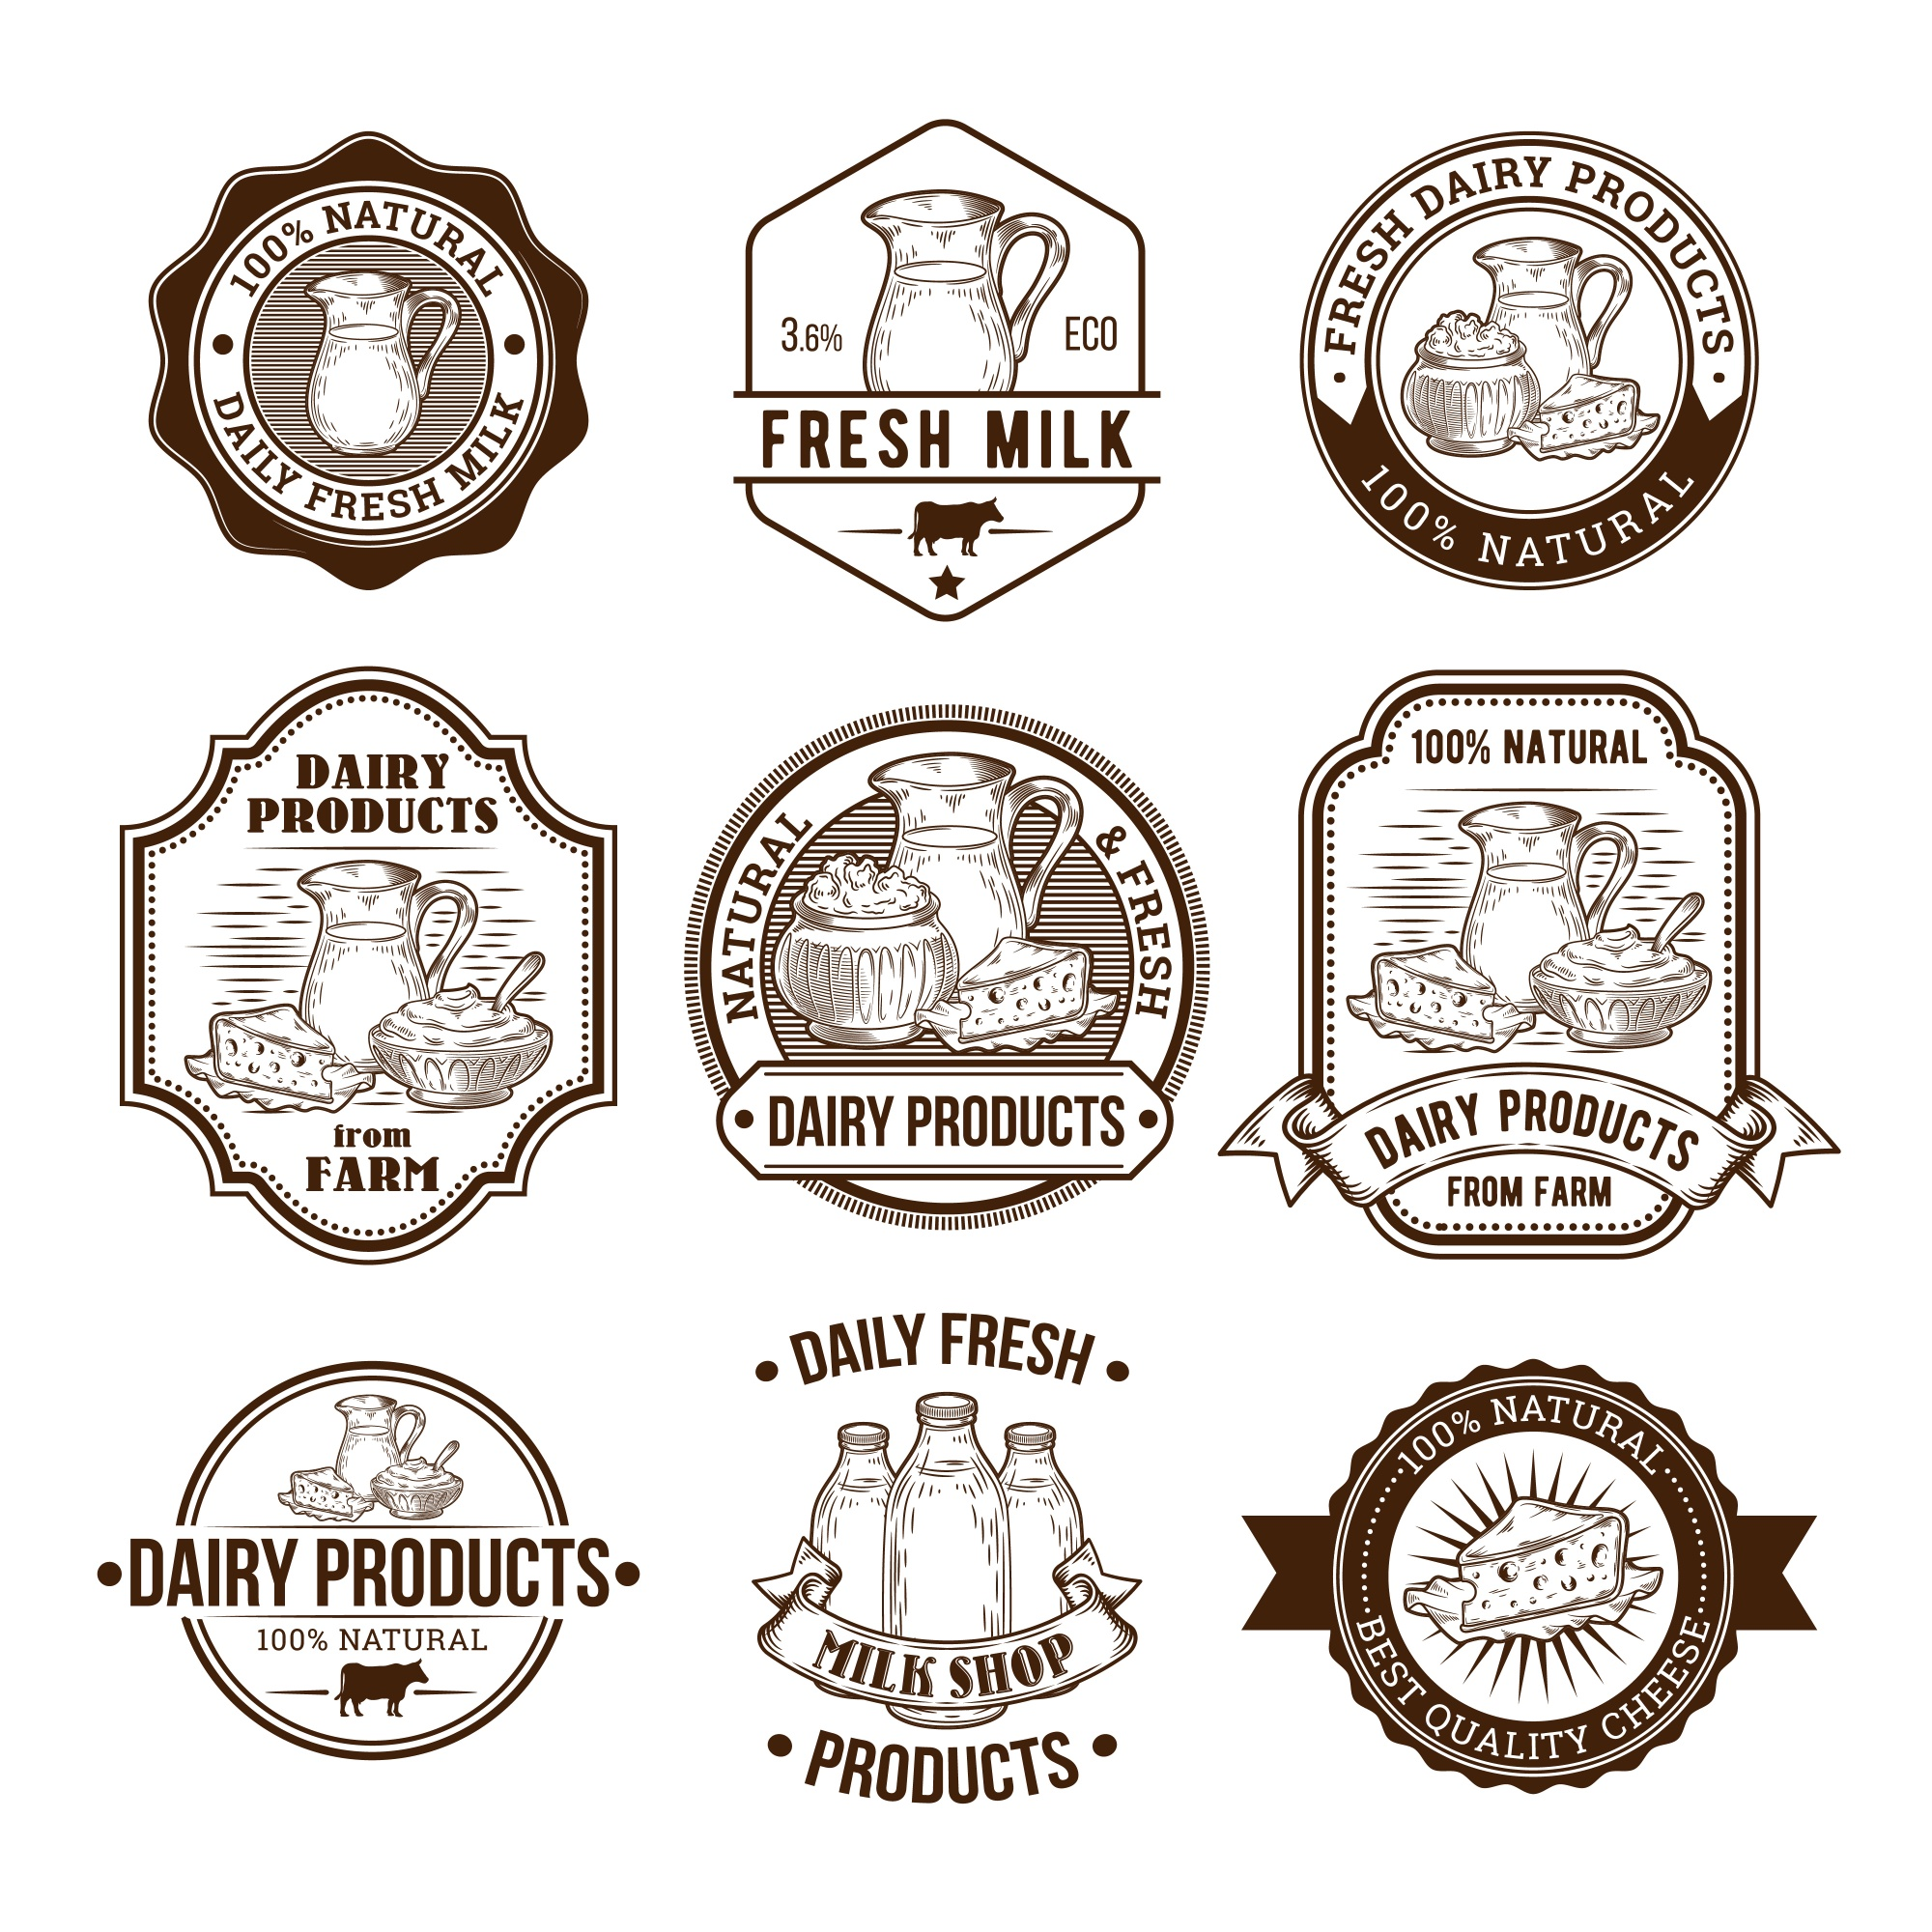 Set of vector illustrations, badges, stickers, labels, stamps for milk and dairy products